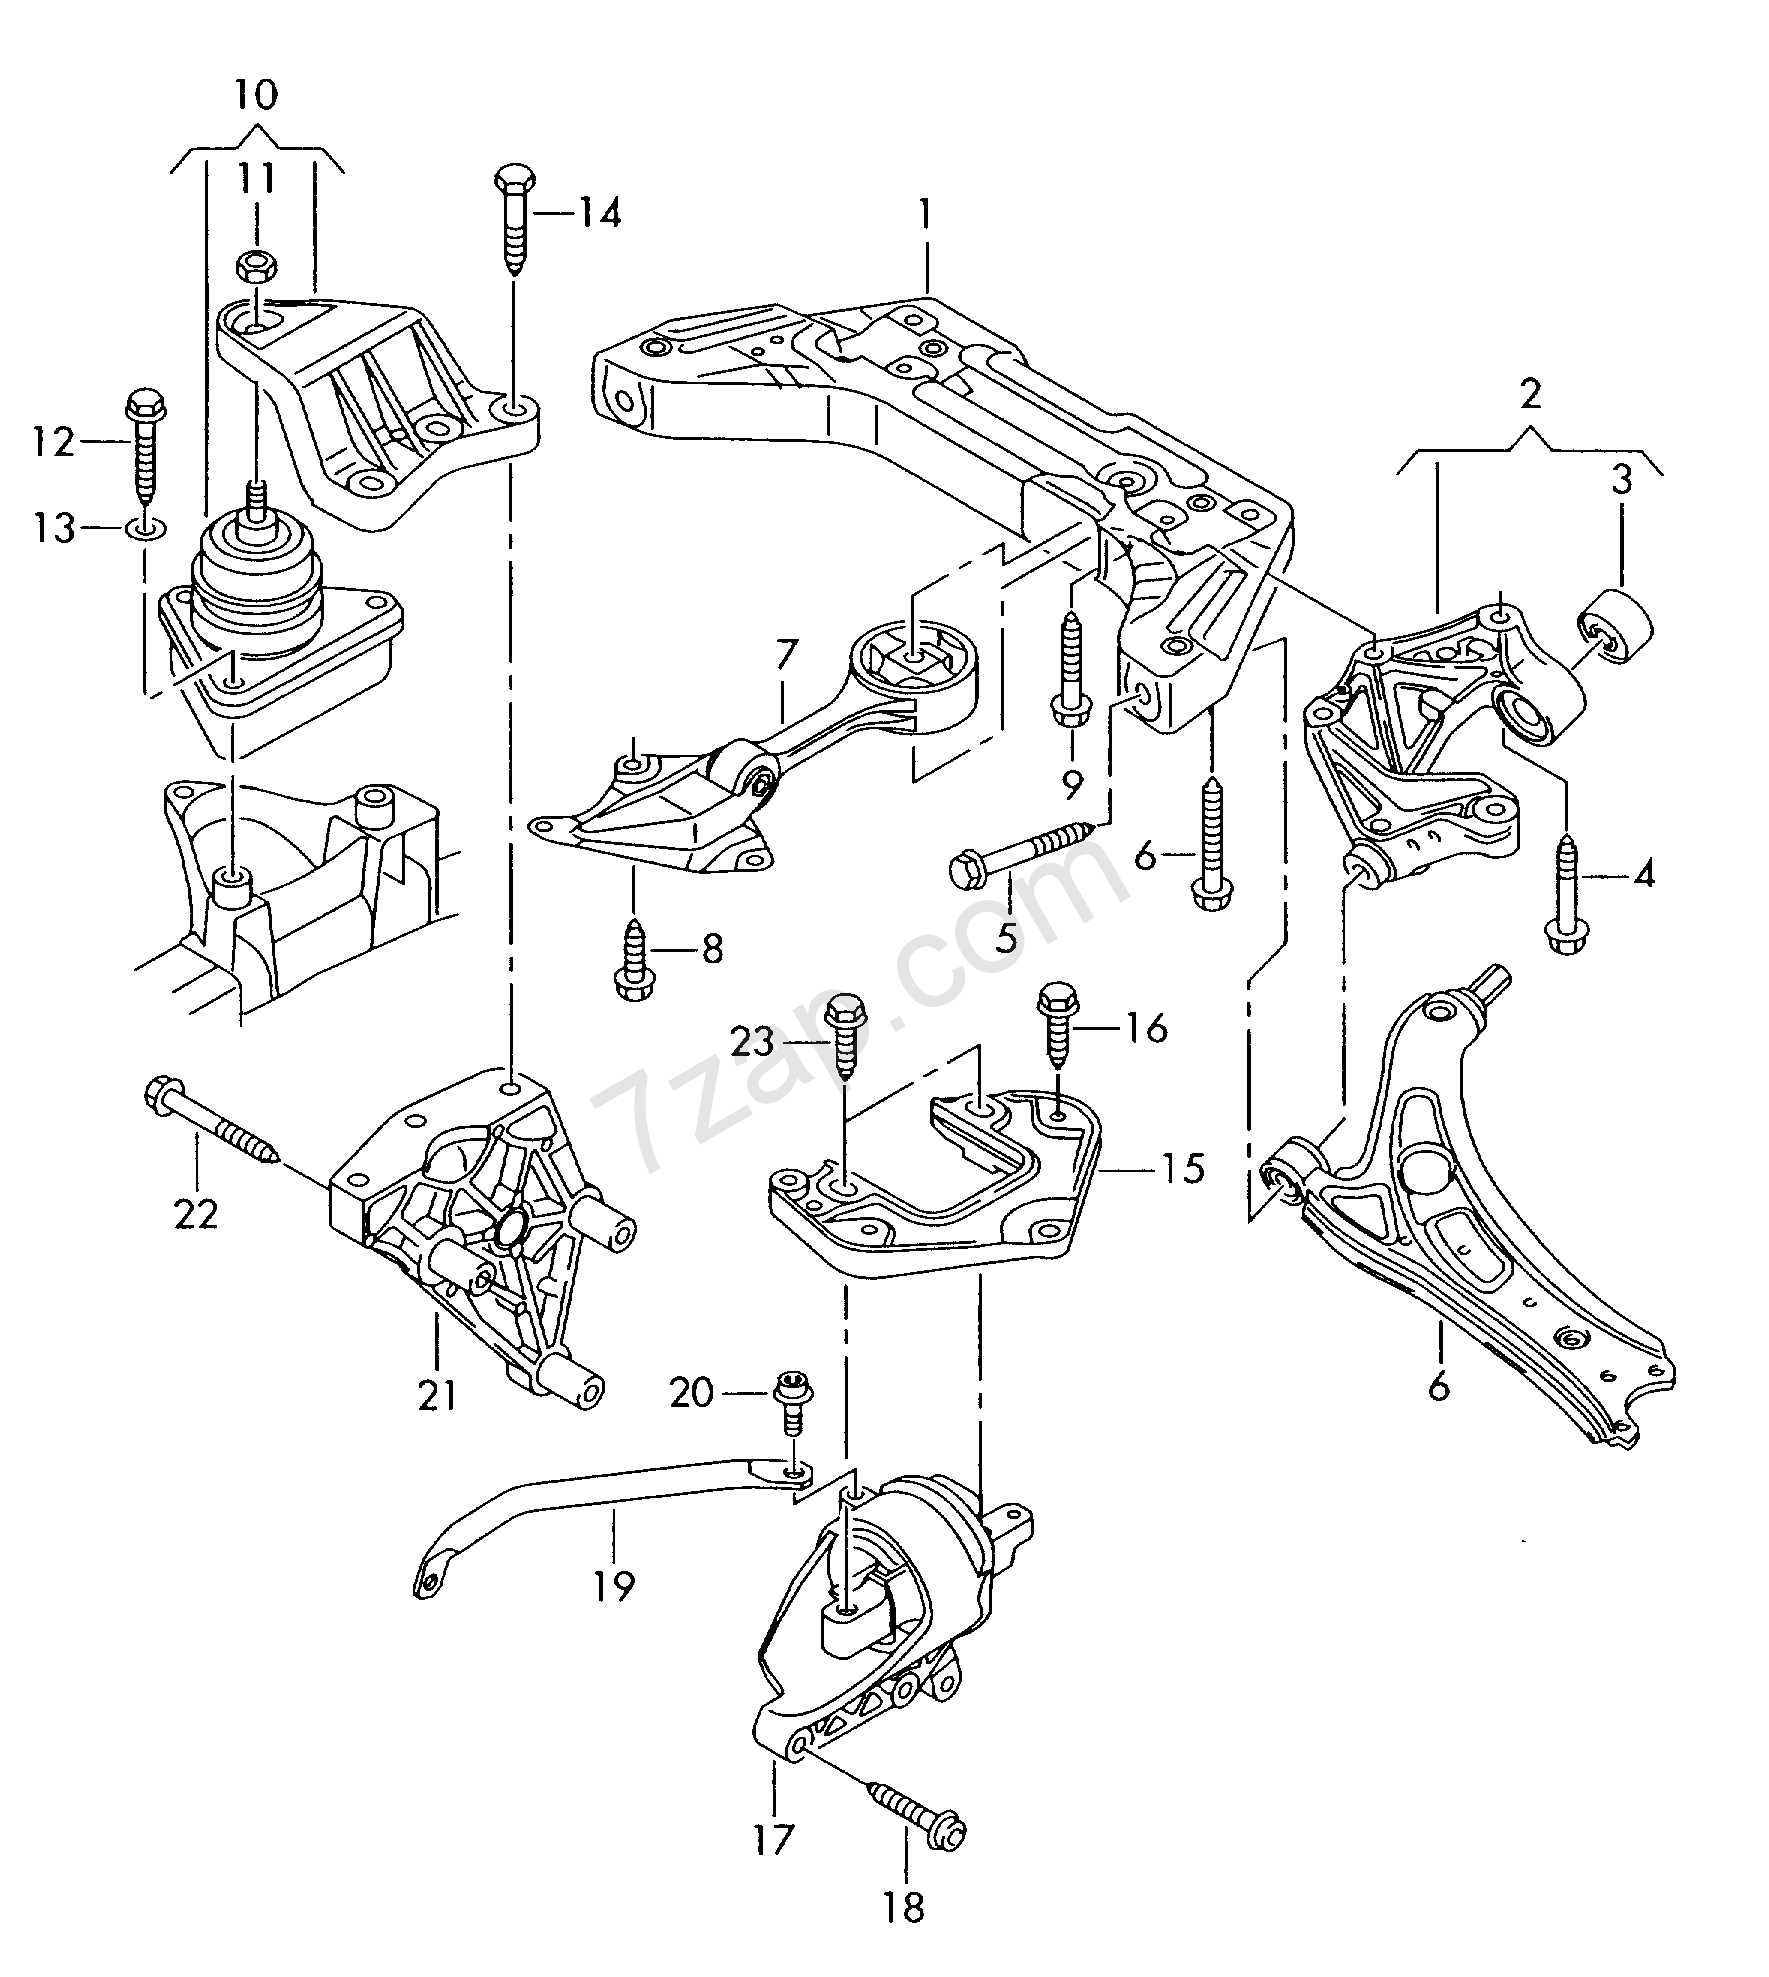 mounting parts for engine and transmission Audi A2 (A2